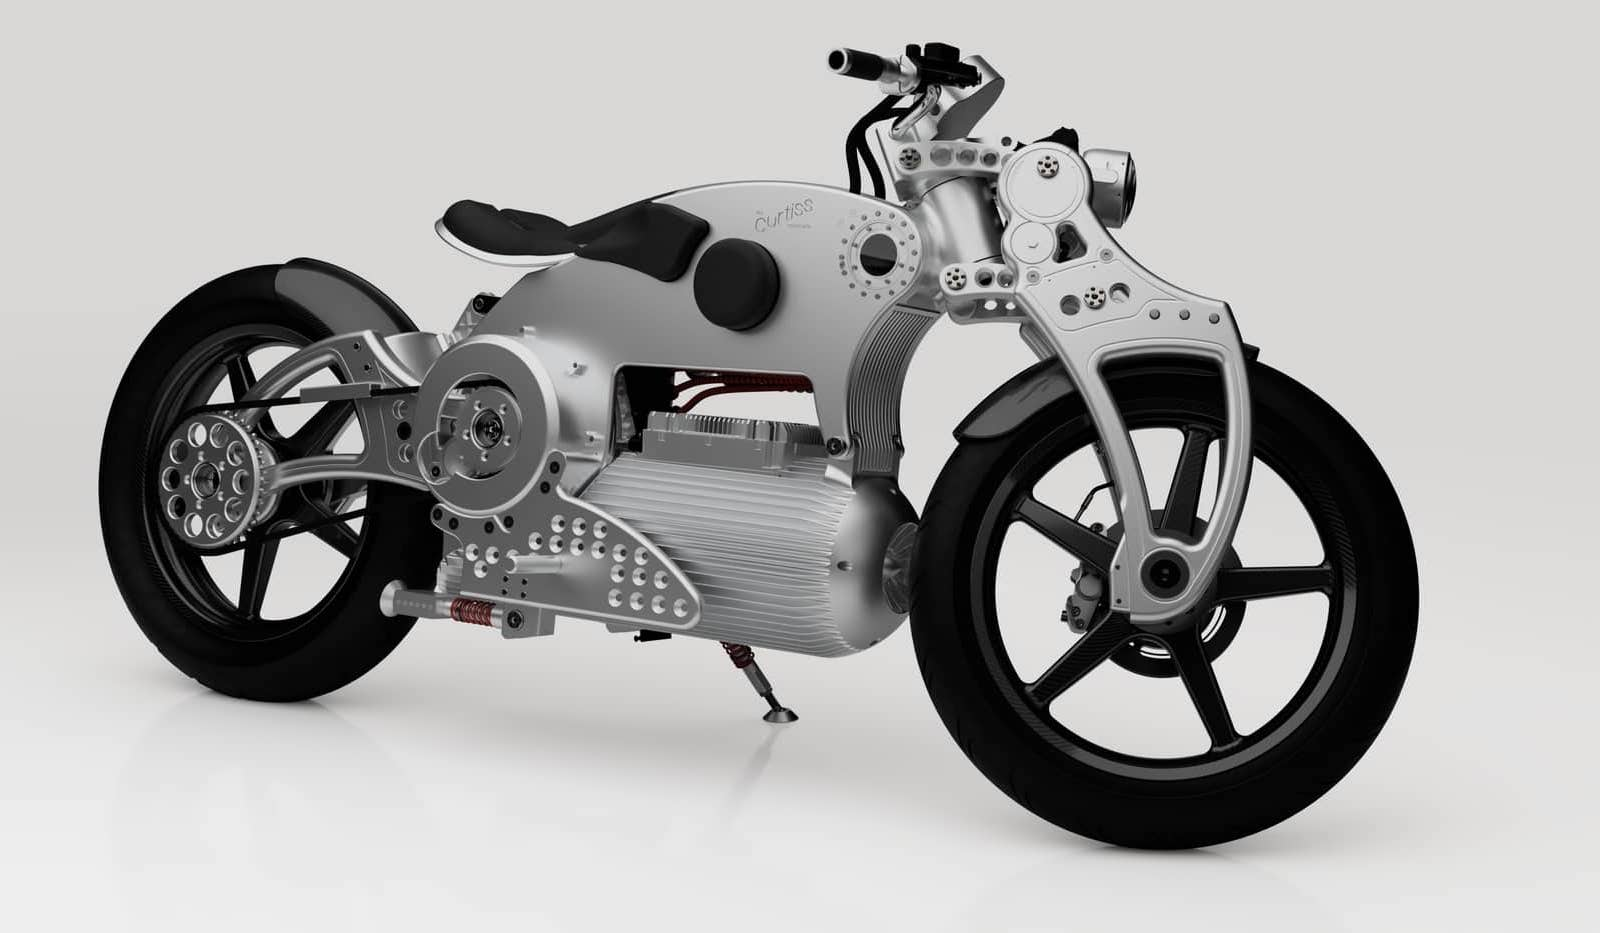 Hades 1 Pure | Curtiss Motorcycles